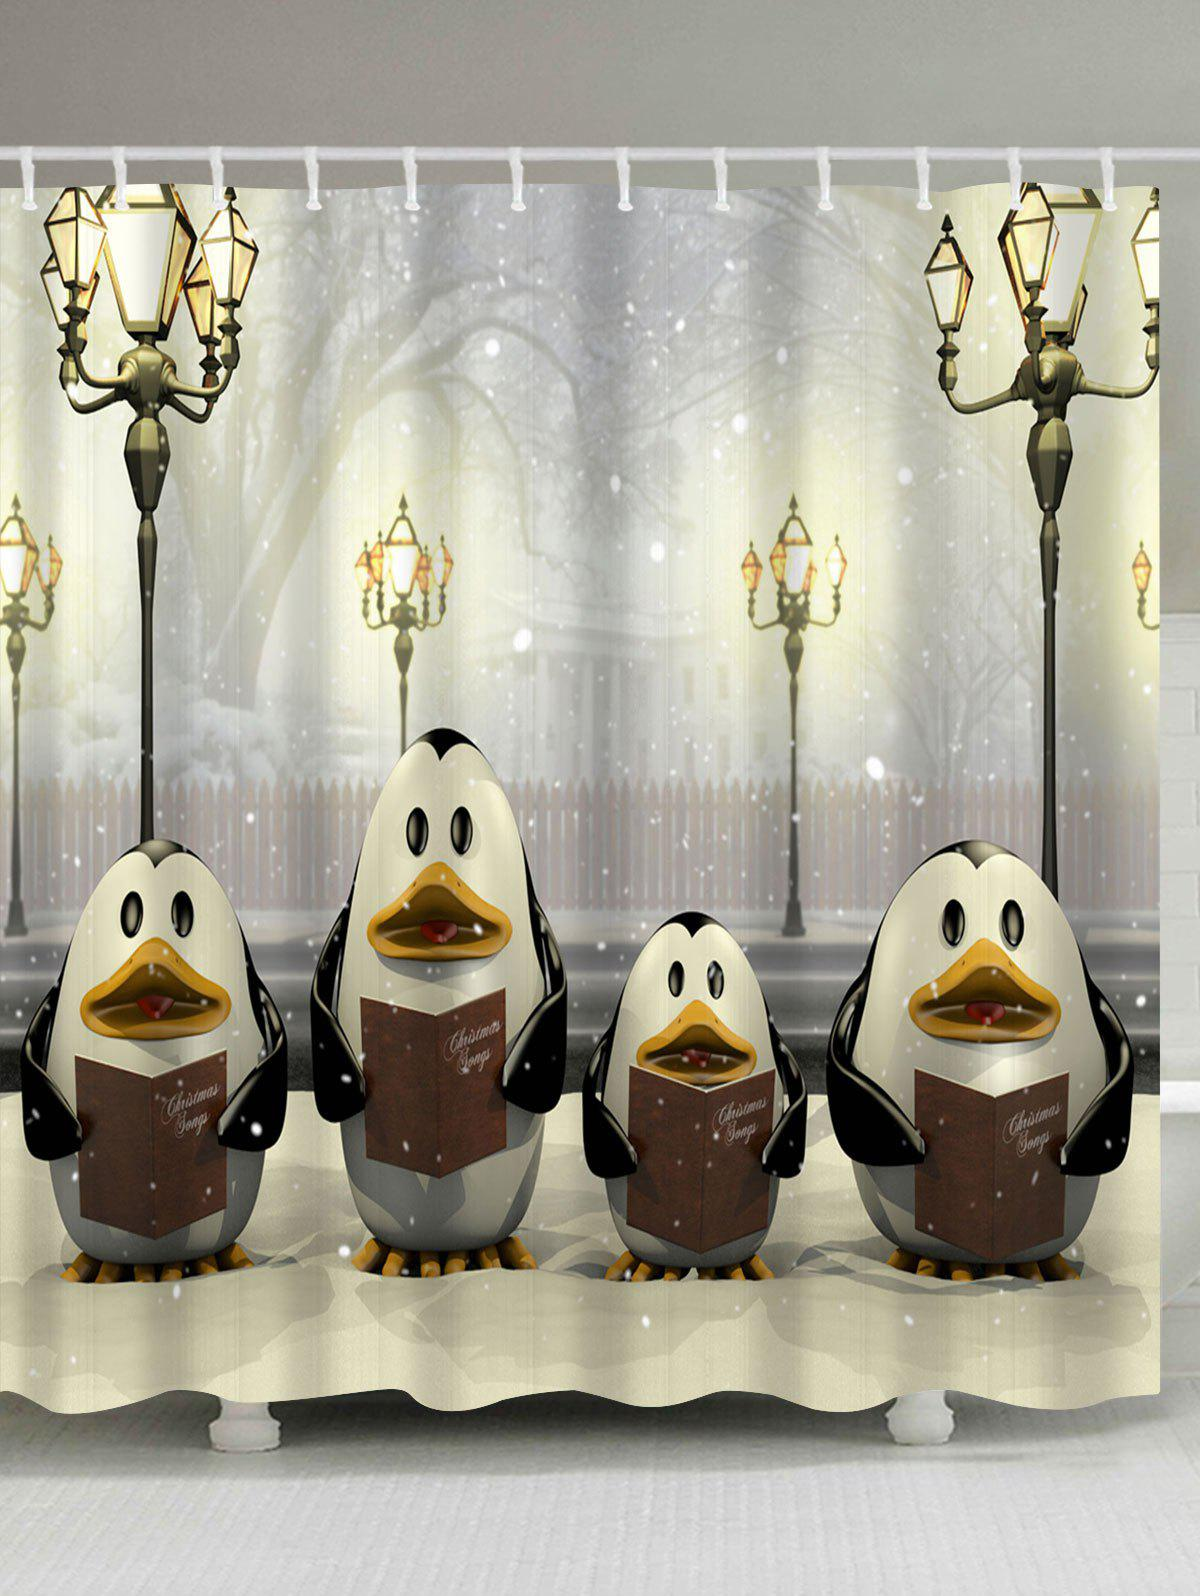 Christmas Street Lamp Penguin Waterproof Shower CurtainHOME<br><br>Size: W71 INCH * L79 INCH; Color: LIGHT YELLOW; Products Type: Shower Curtains; Materials: Polyester; Pattern: Animal; Style: Festival; Number of Hook Holes: W59 inch*L71 inch: 10; W71 inch*L71 inch: 12; W71 inch*L79 inch: 12; Package Contents: 1 x Shower Curtain 1 x Hooks (Set);